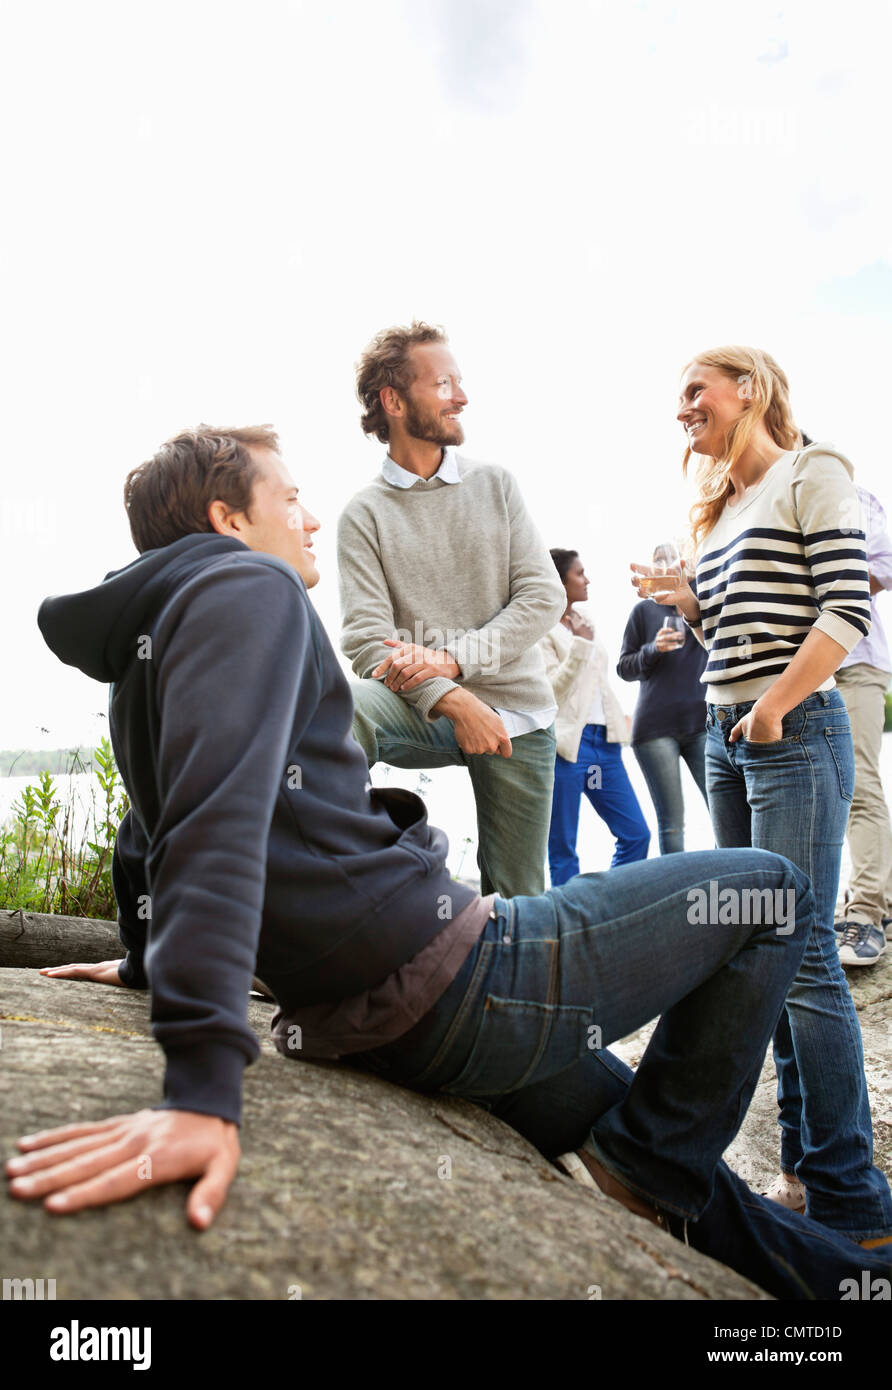 Friends at archipelago - Stock Image